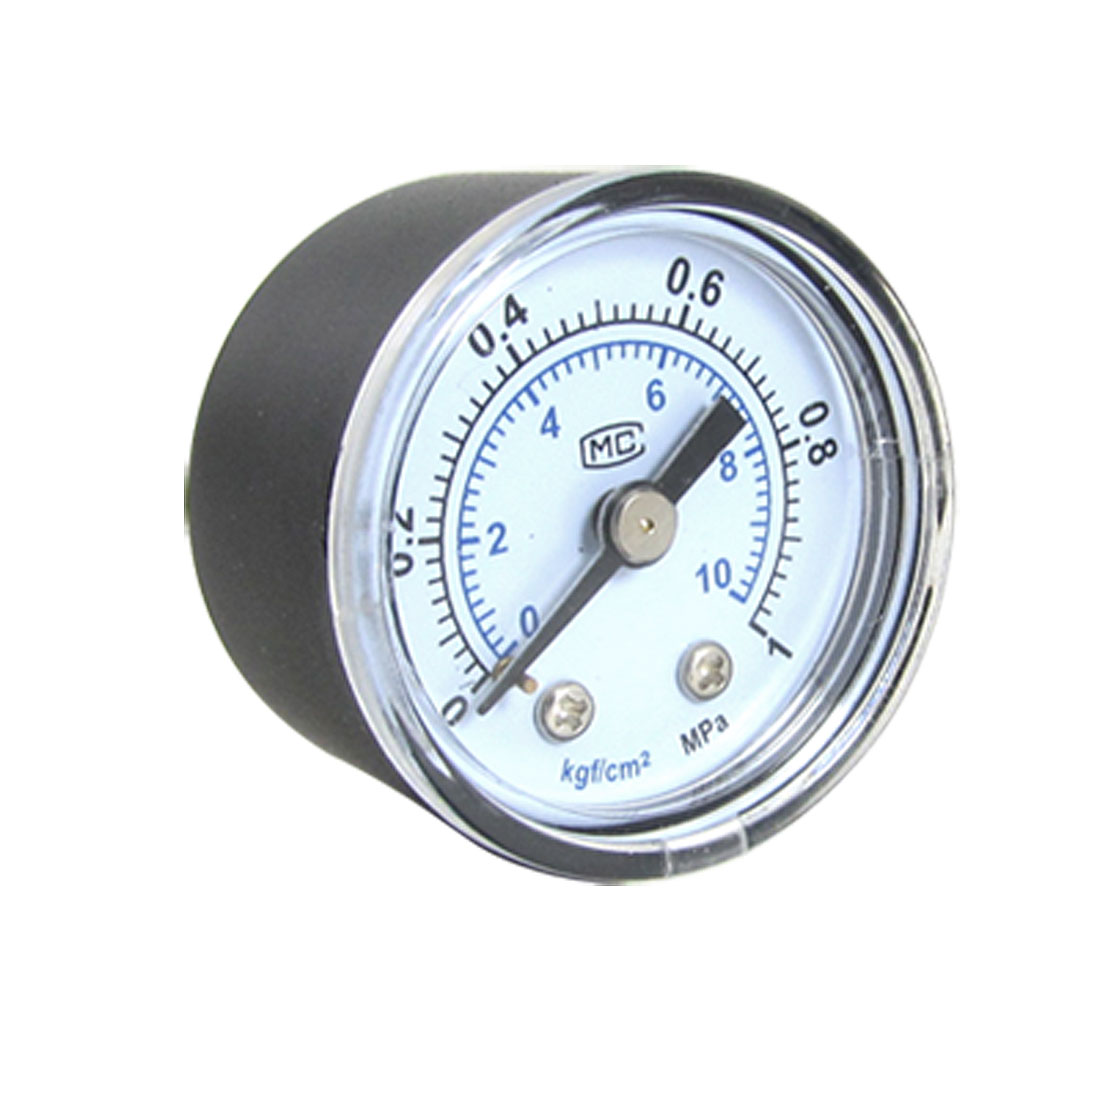 "0.35"" Threaded NPT 1 MPa Round Dial Gaseous Air Pressure Gauge"